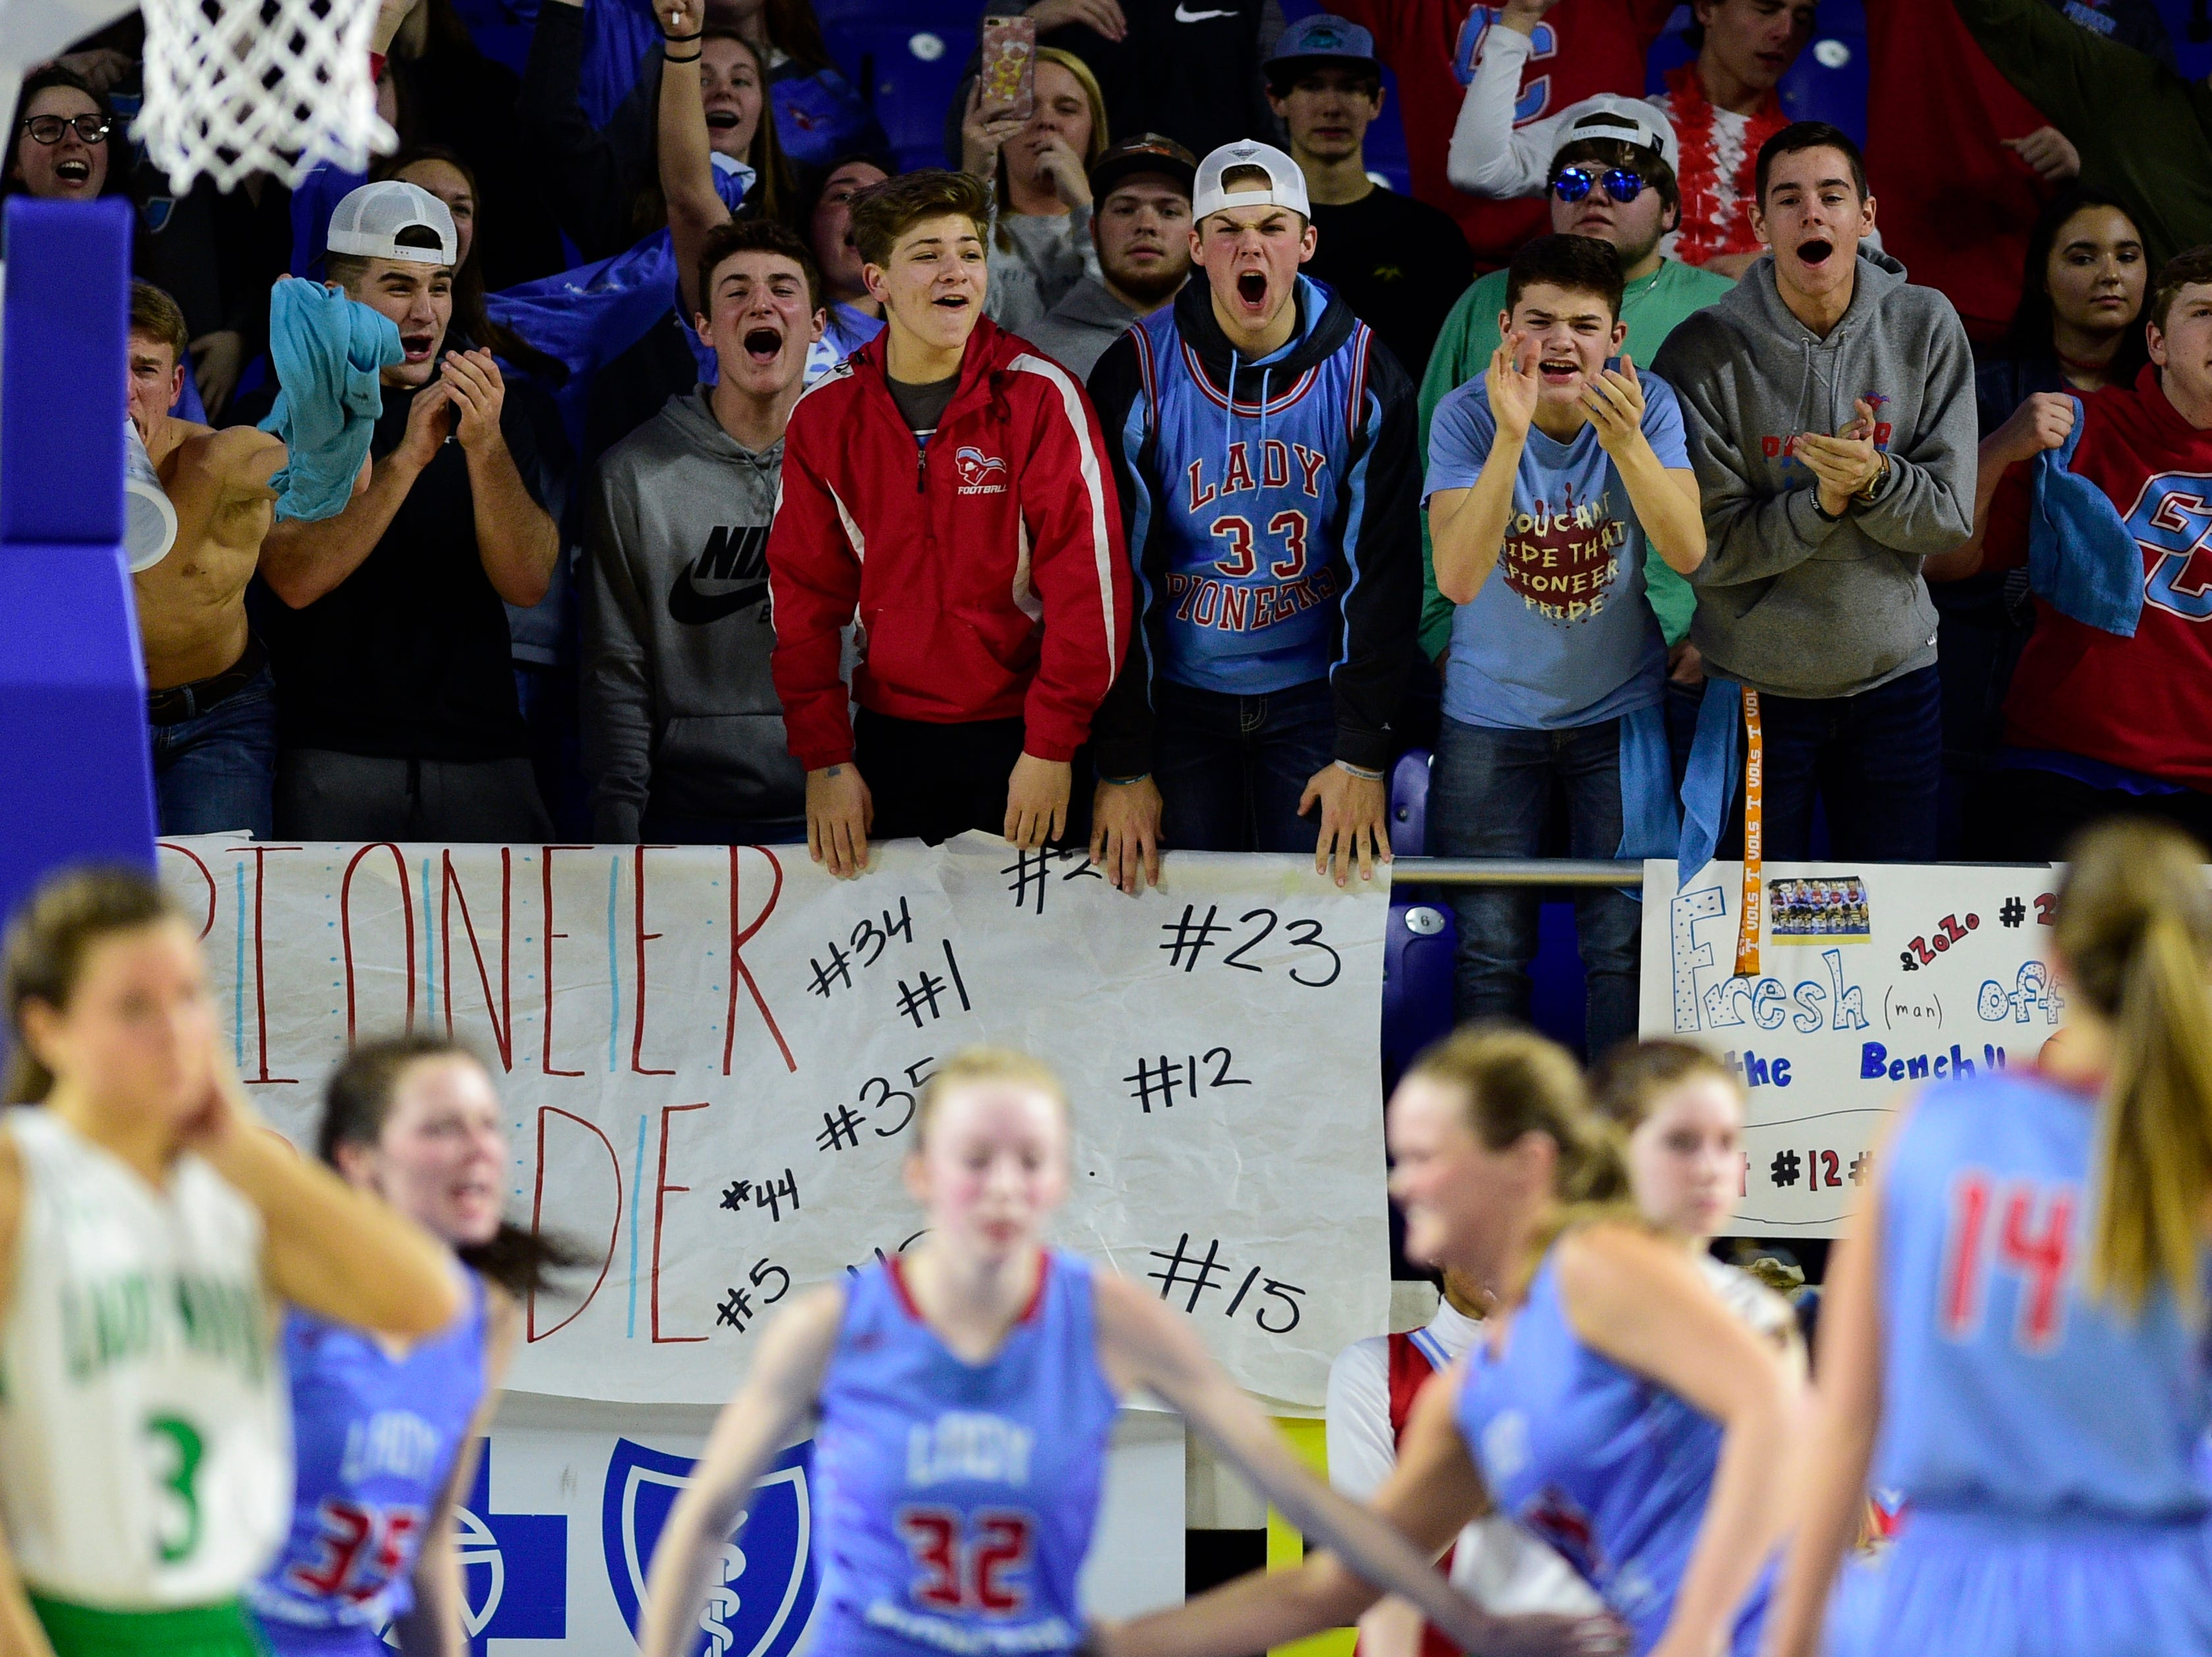 The Gibson County student fan section cheers during a game between Midway and Gibson County at the TSSAA girls state tournament at the Murphy Center in Murfreesboro, Tennessee on Friday, March 8, 2019.